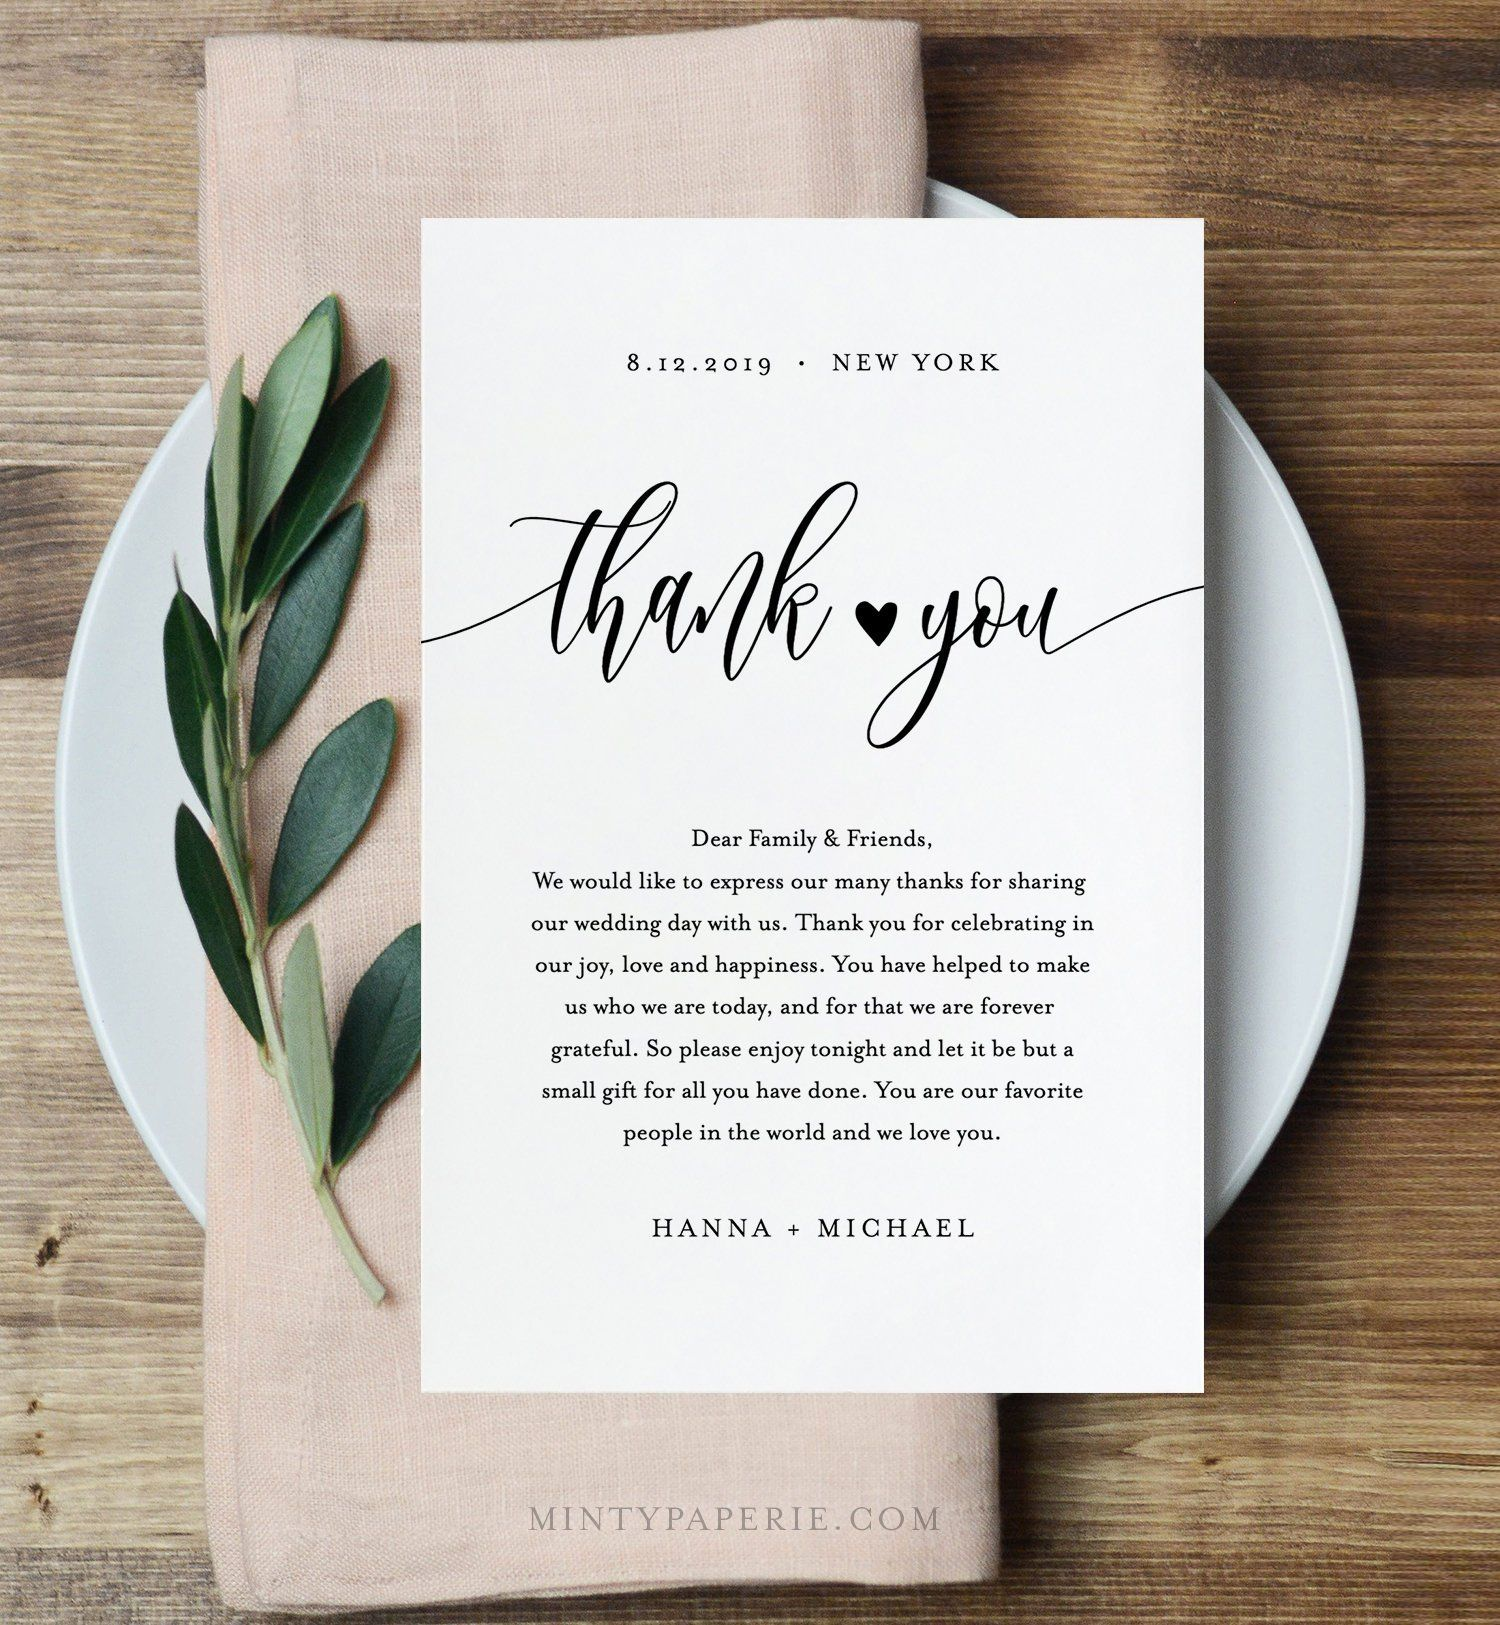 Thank You Note Template, Rustic Wedding In Lieu of Favor